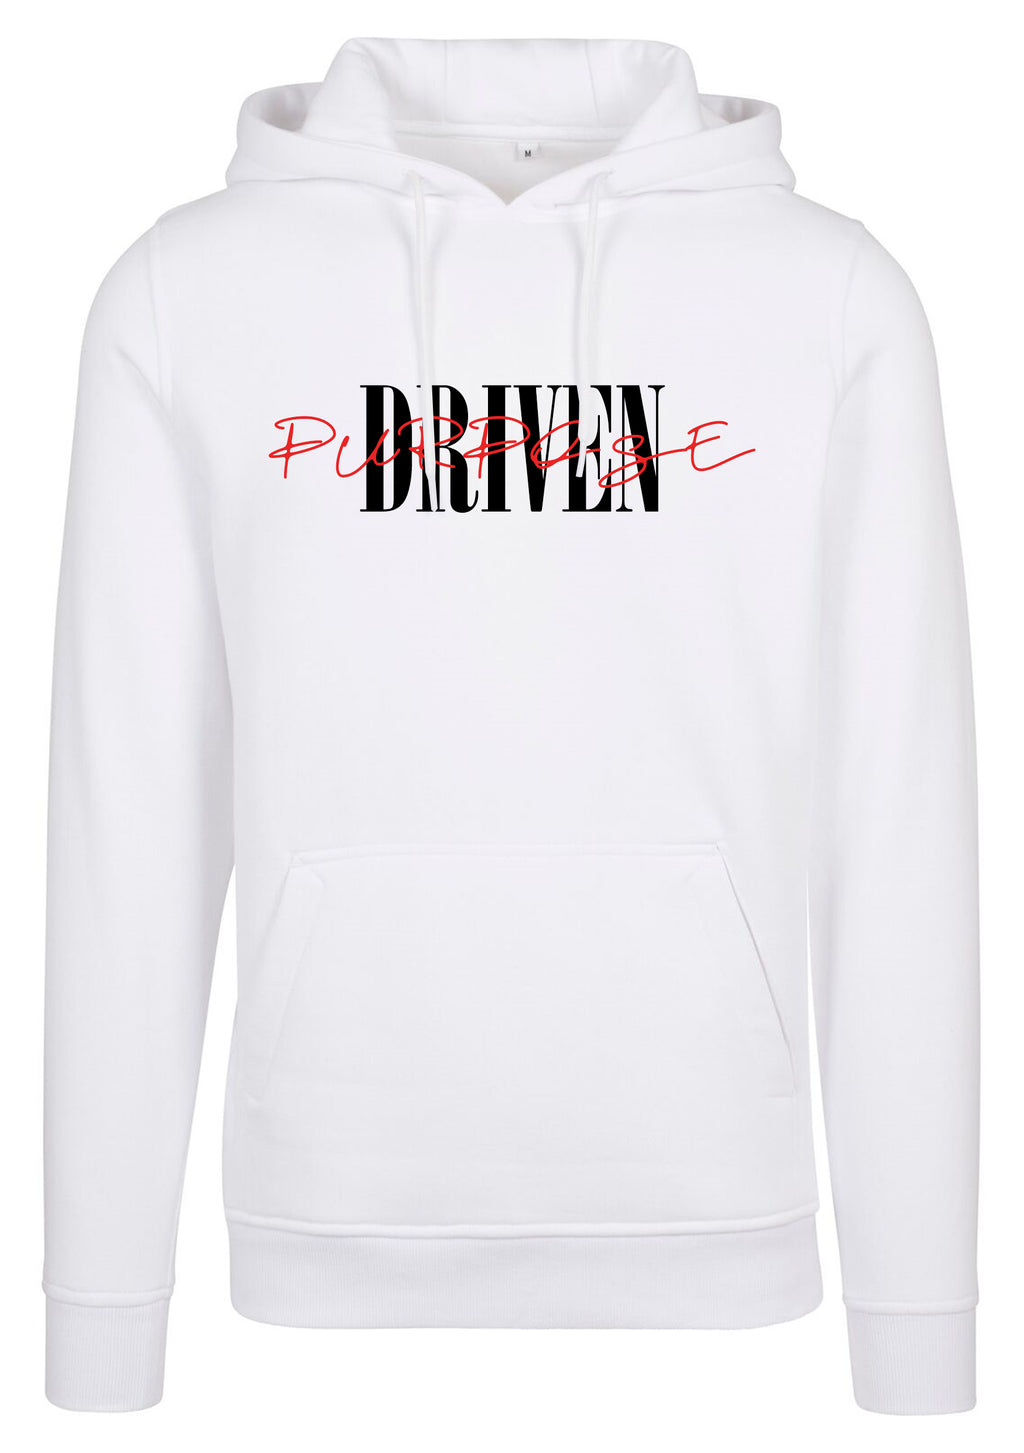 PURPOSE DRIVEN Unisex Pullover Hoodie (White)